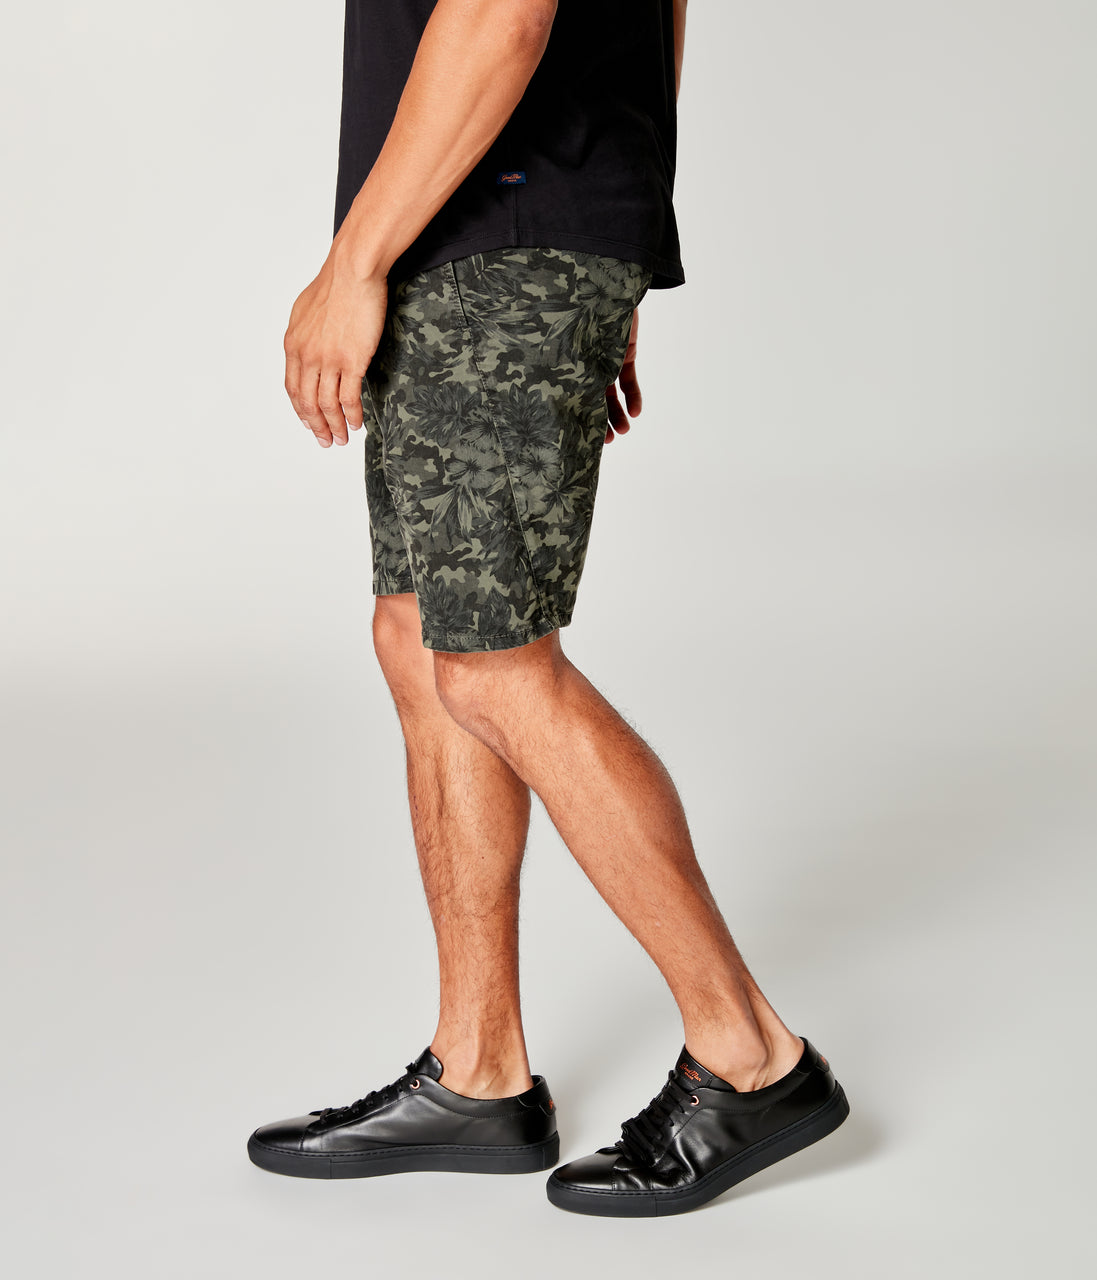 Monaco Stretch Twill Camo Wrap Short - Military Green - Good Man Brand - Monaco Stretch Twill Camo Wrap Short - Military Green